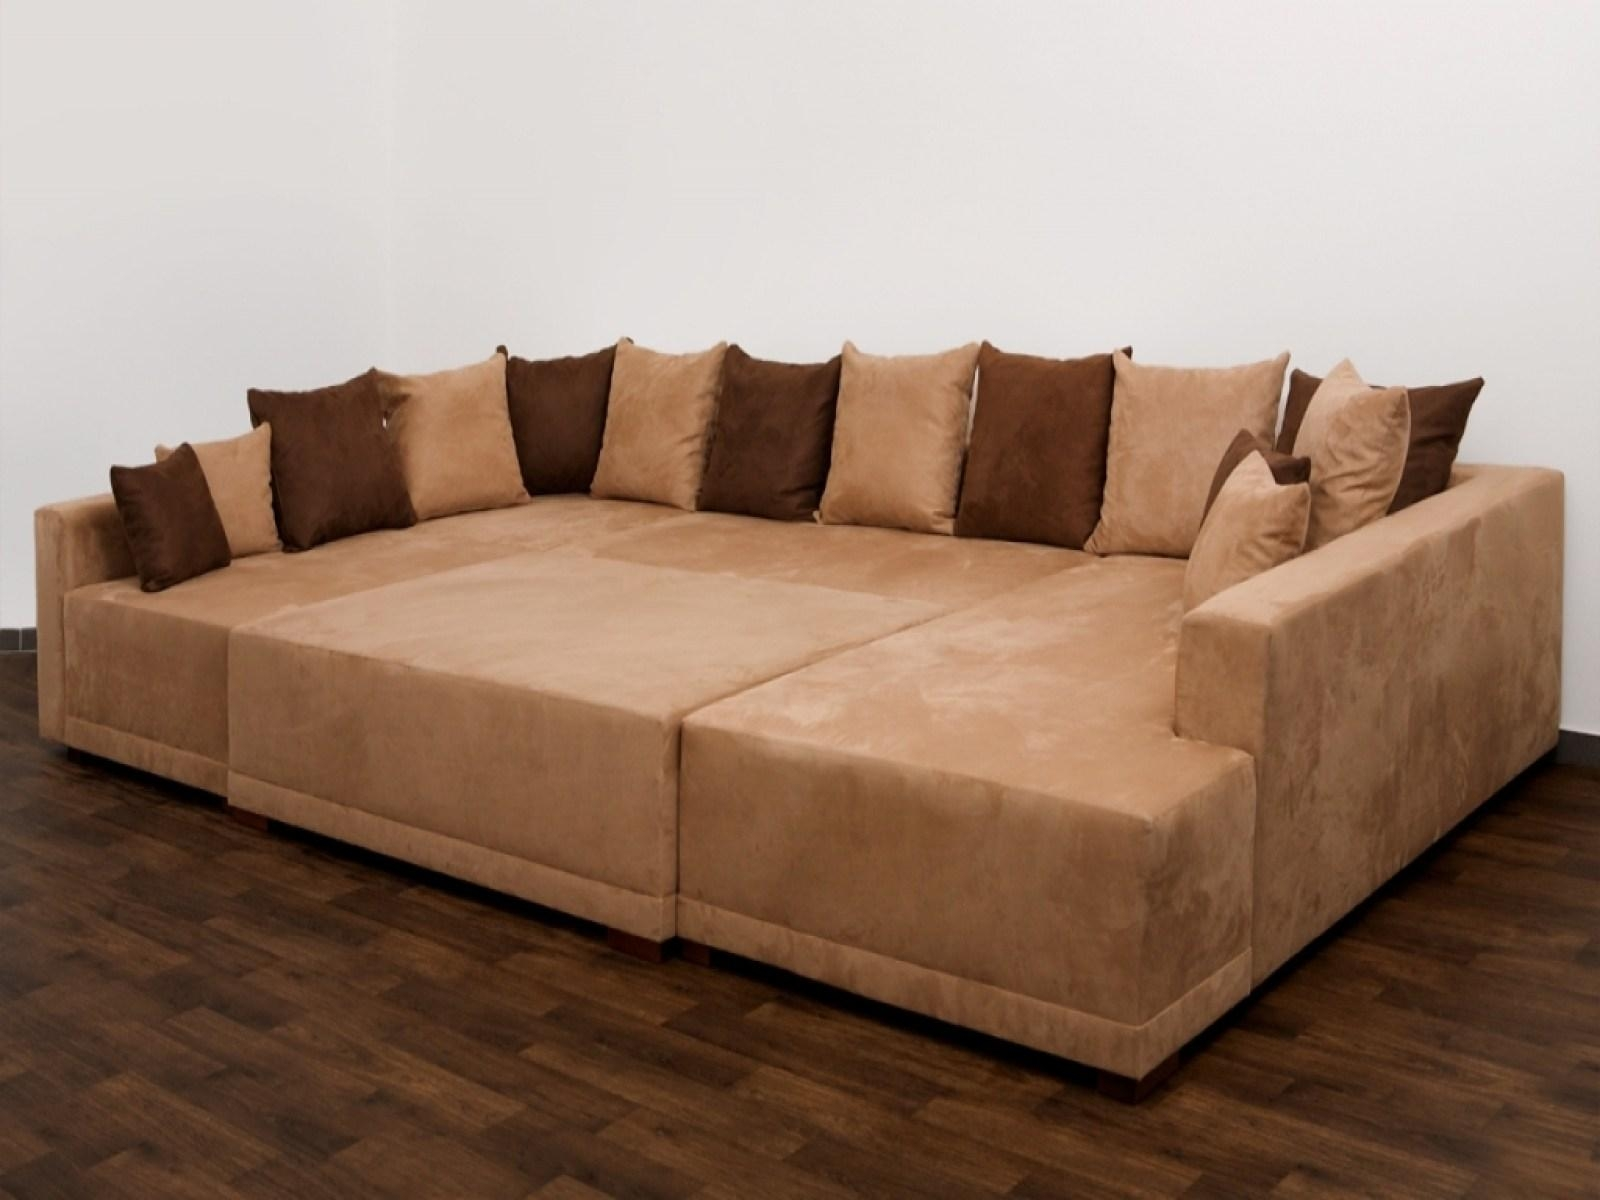 Big Couch 20 Ideas Of Huge Leather Sectional Sofa Ideas